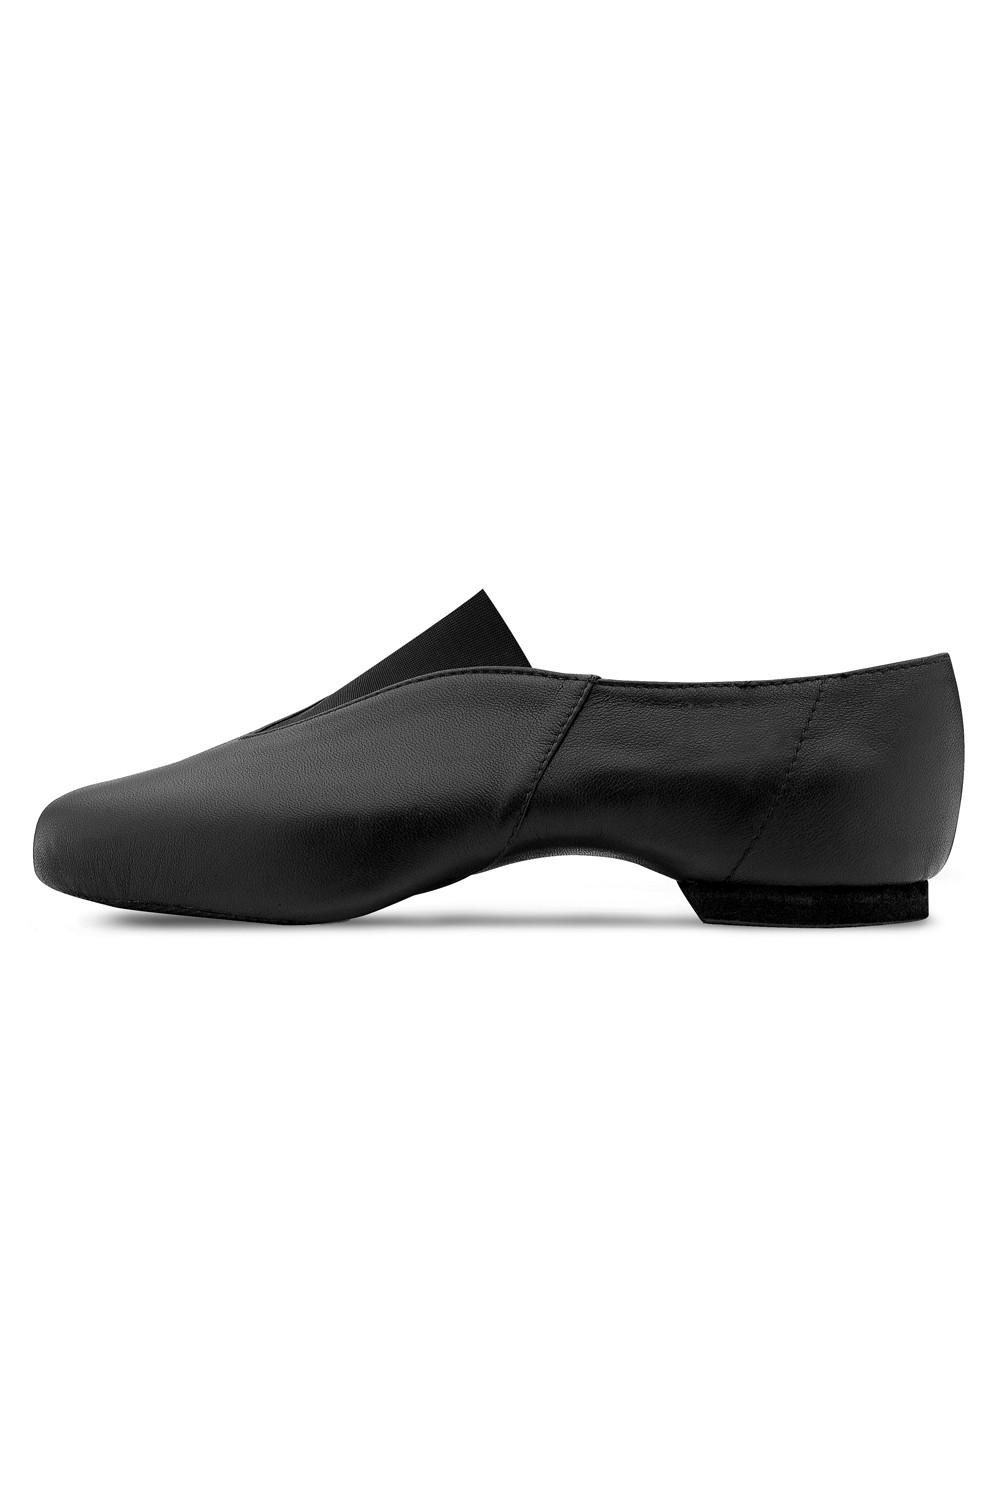 Pure Jazz Women's Jazz Shoes